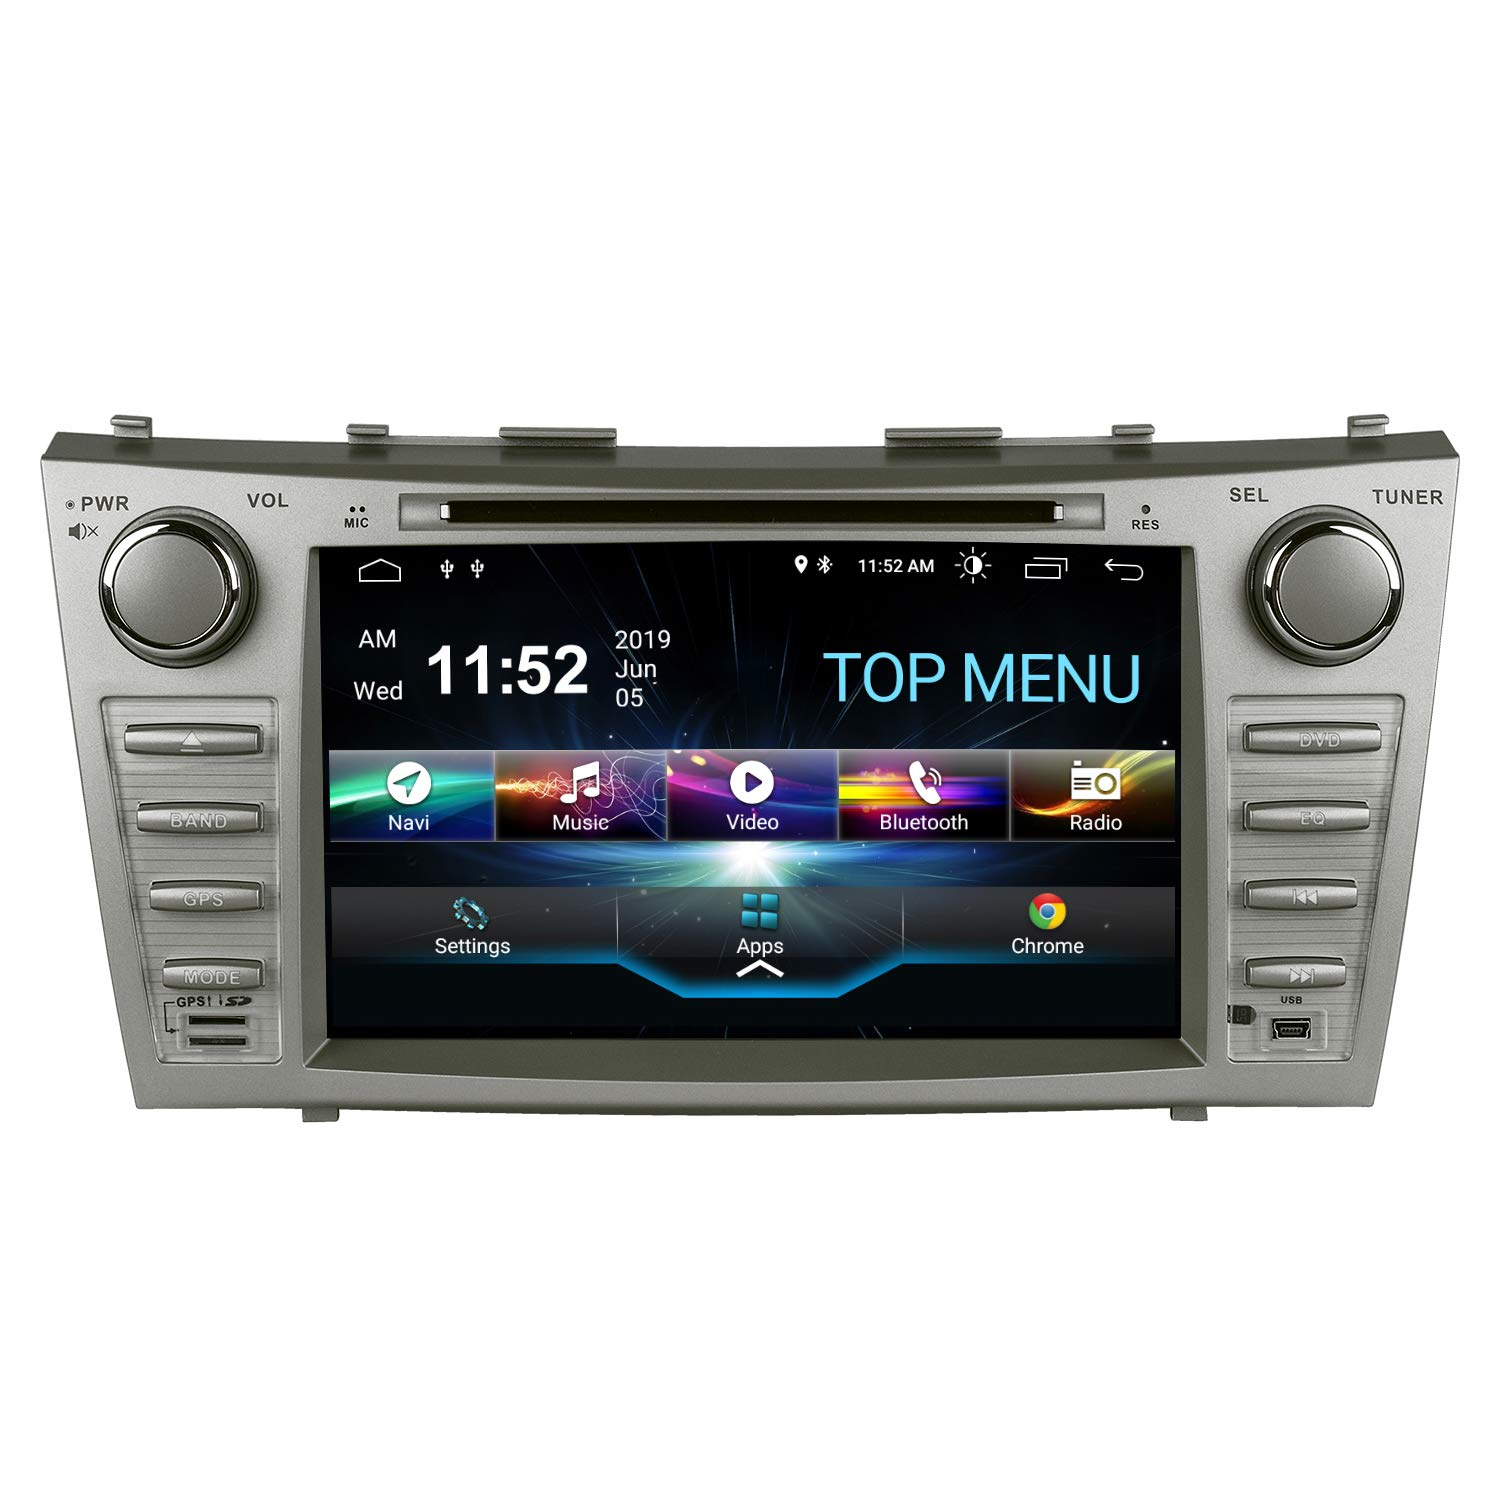 SWTNVIN Camry Car Stereo for 2007 2008 2009 2010 2011,Android 10.0 Double Din in-Dash 8 Inch Touch Screen Multimedia Receiver with Bluetooth GPS Navigation Radio Audio DVD Player TPMS SWC 2GB+16GB